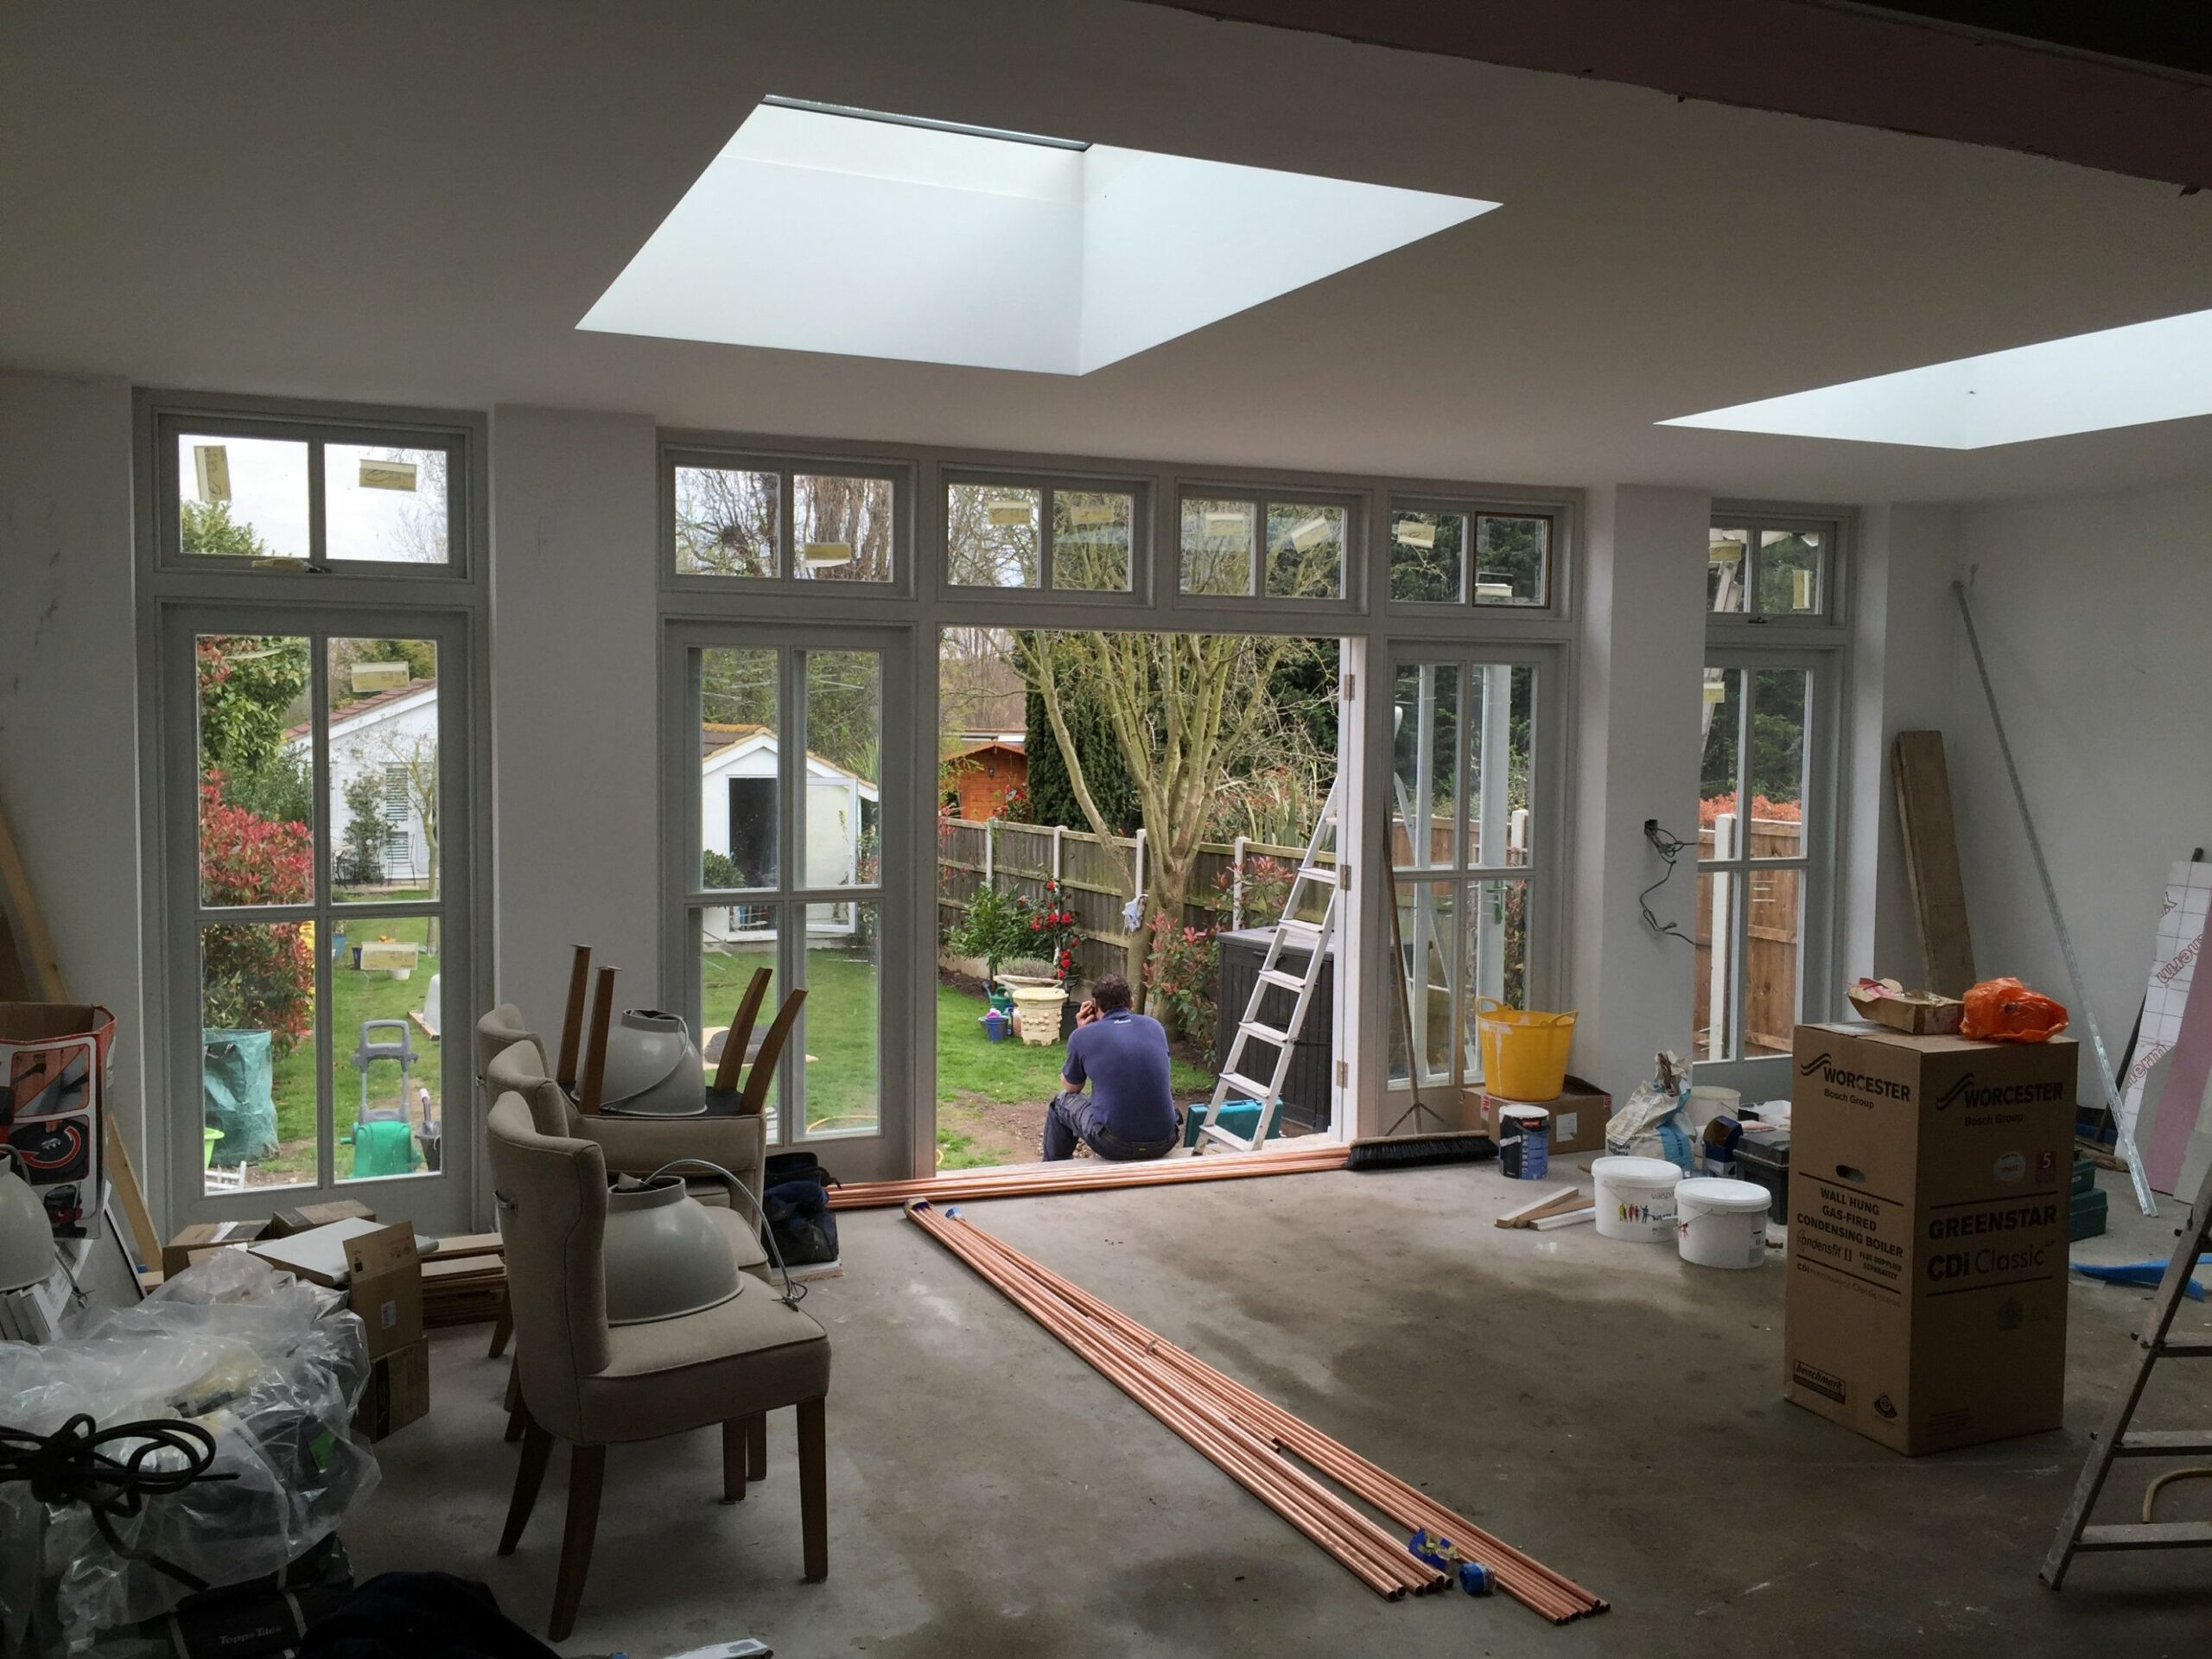 Current Project - Single storey rear extension amazing wooden ..